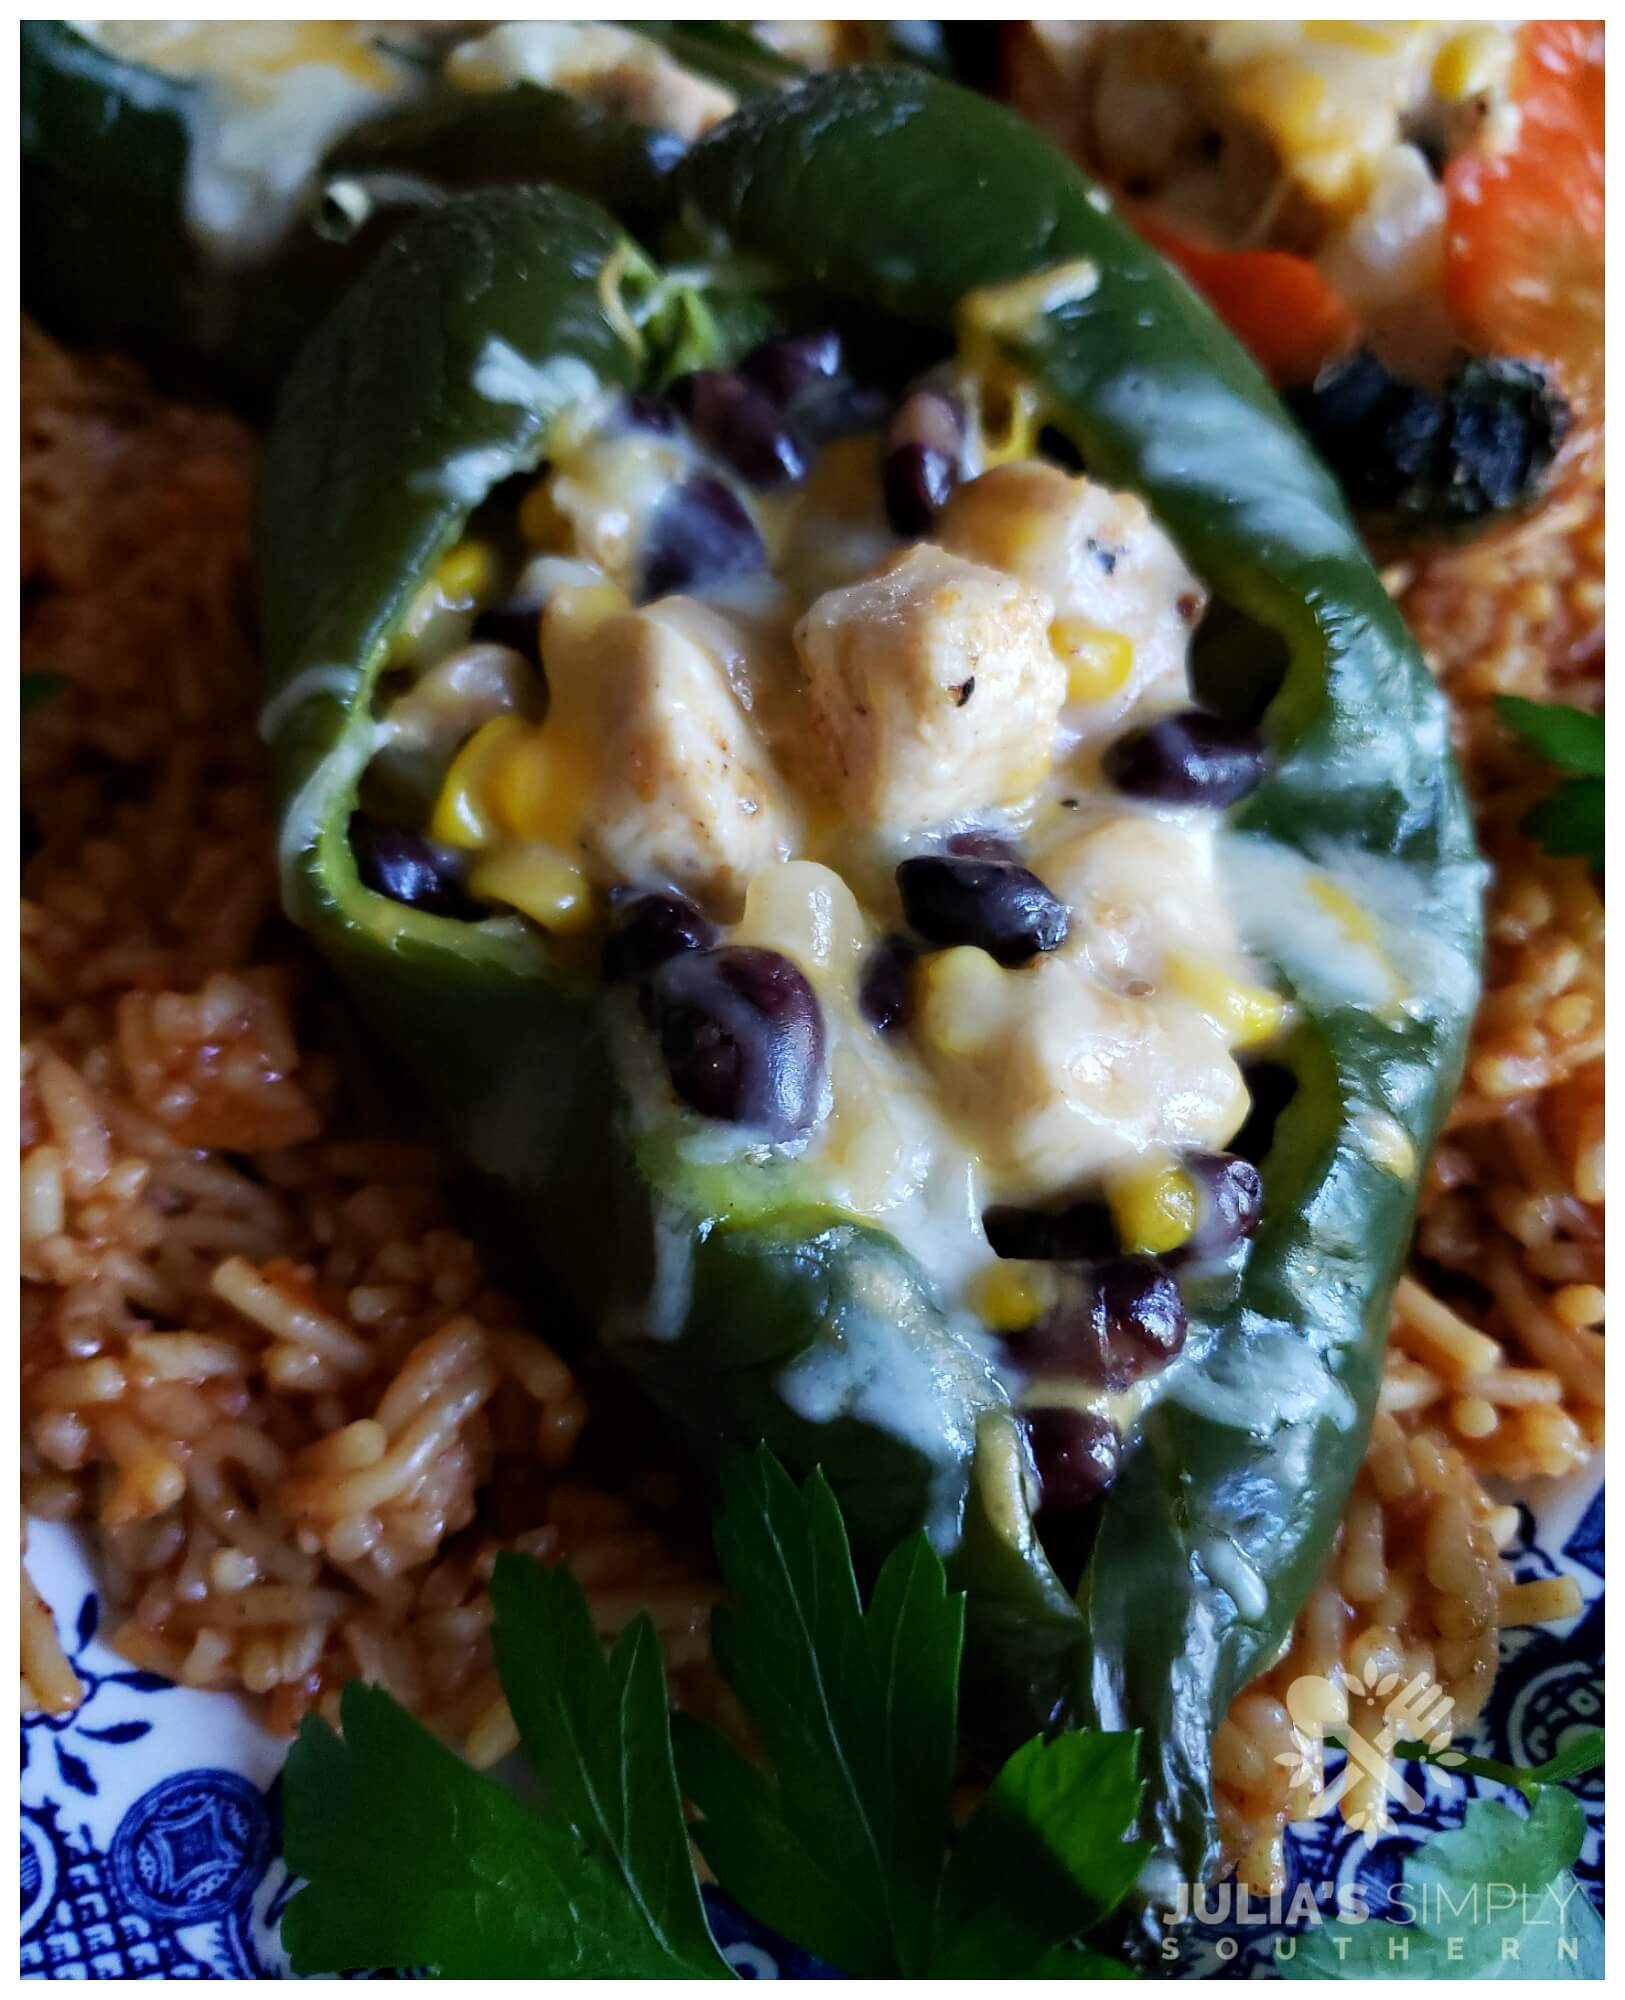 Fresh baked poblano pepper stuffed with chicken, cheese, corn and black beans and served on a bed of Spanish rice. The best stuffed pepper recipe with poblanos.